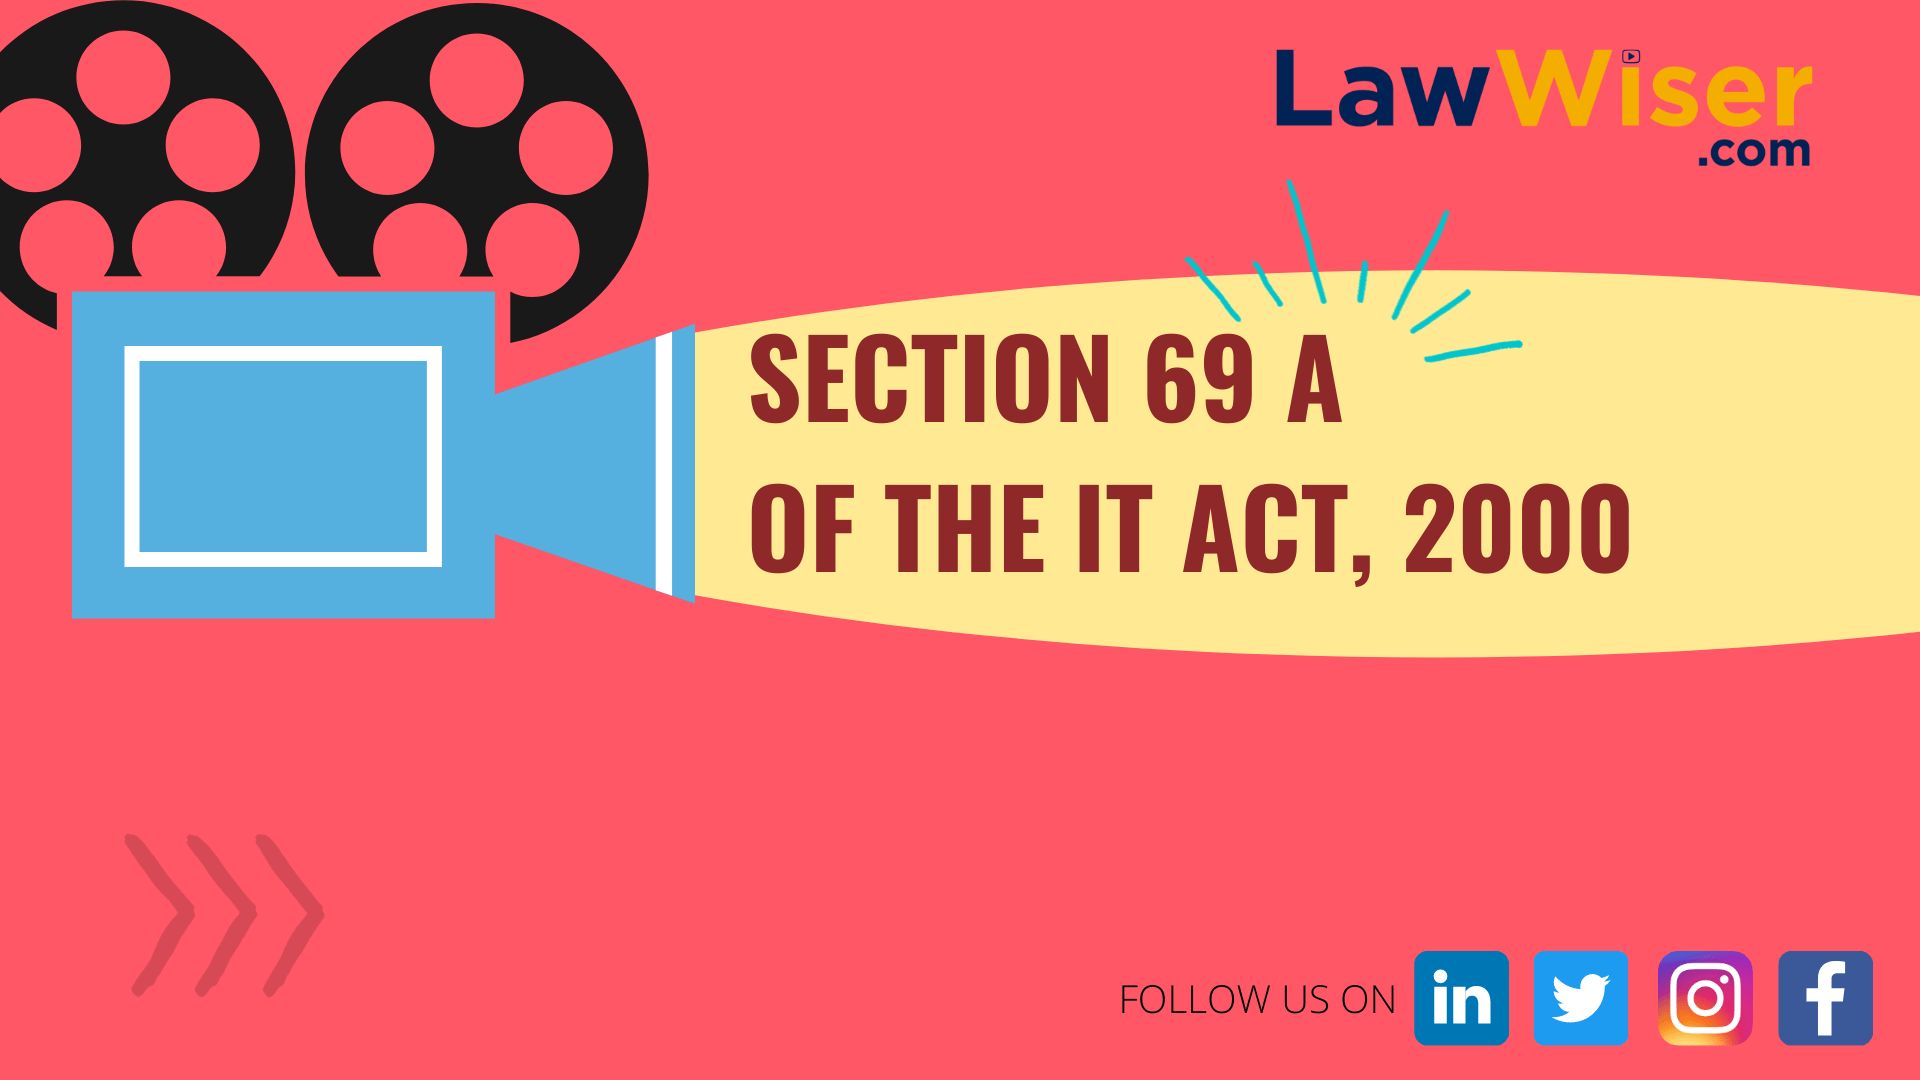 Section 69 A of the IT Act (Information Technology Act), 2000 | LawWiser | #QuickBytes